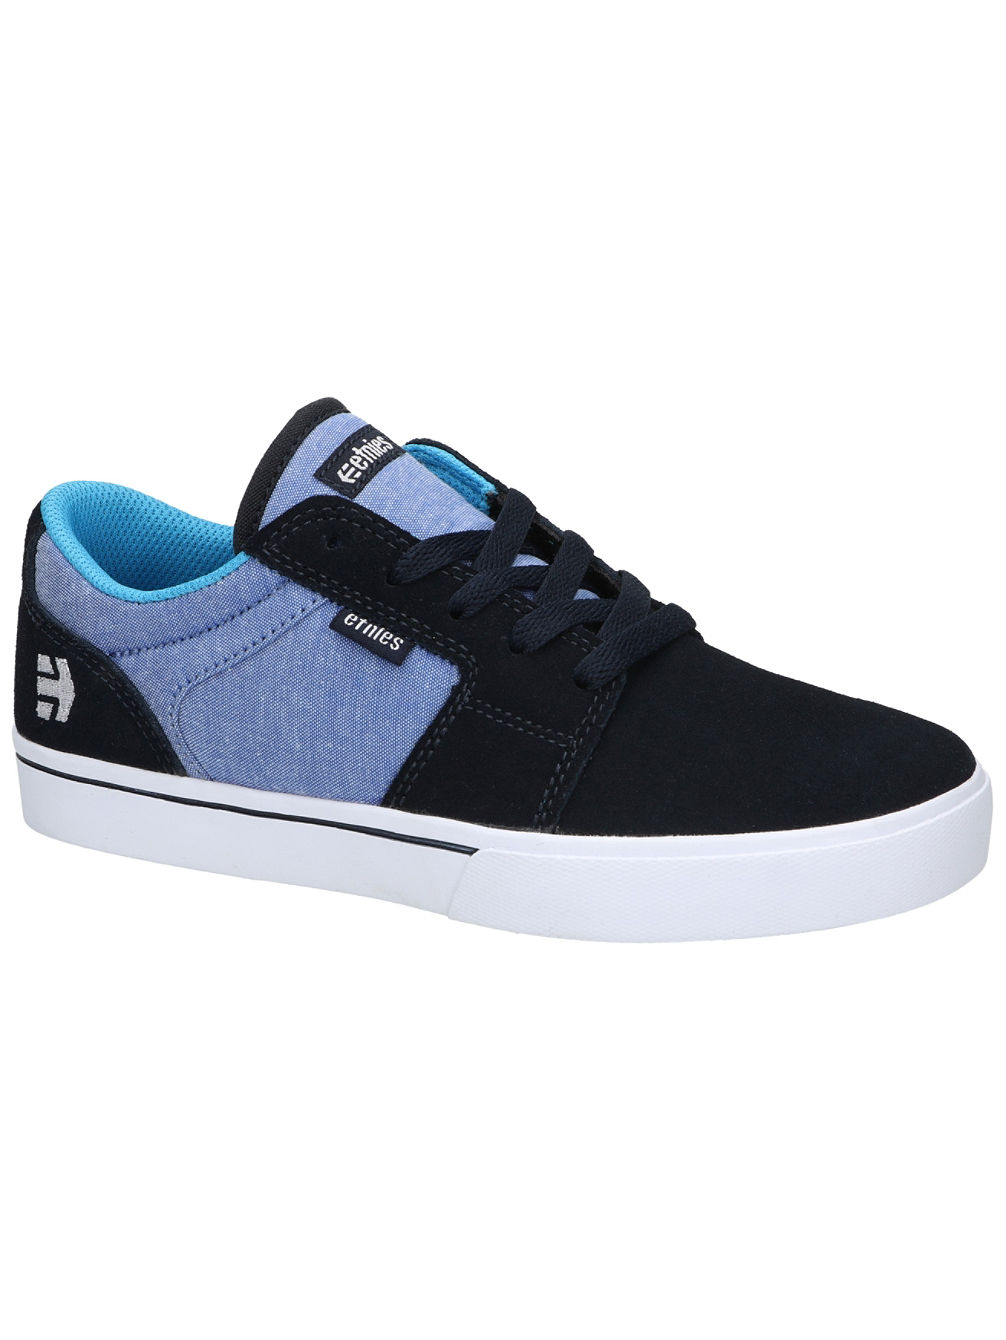 Barge LS Skate Shoes Boys